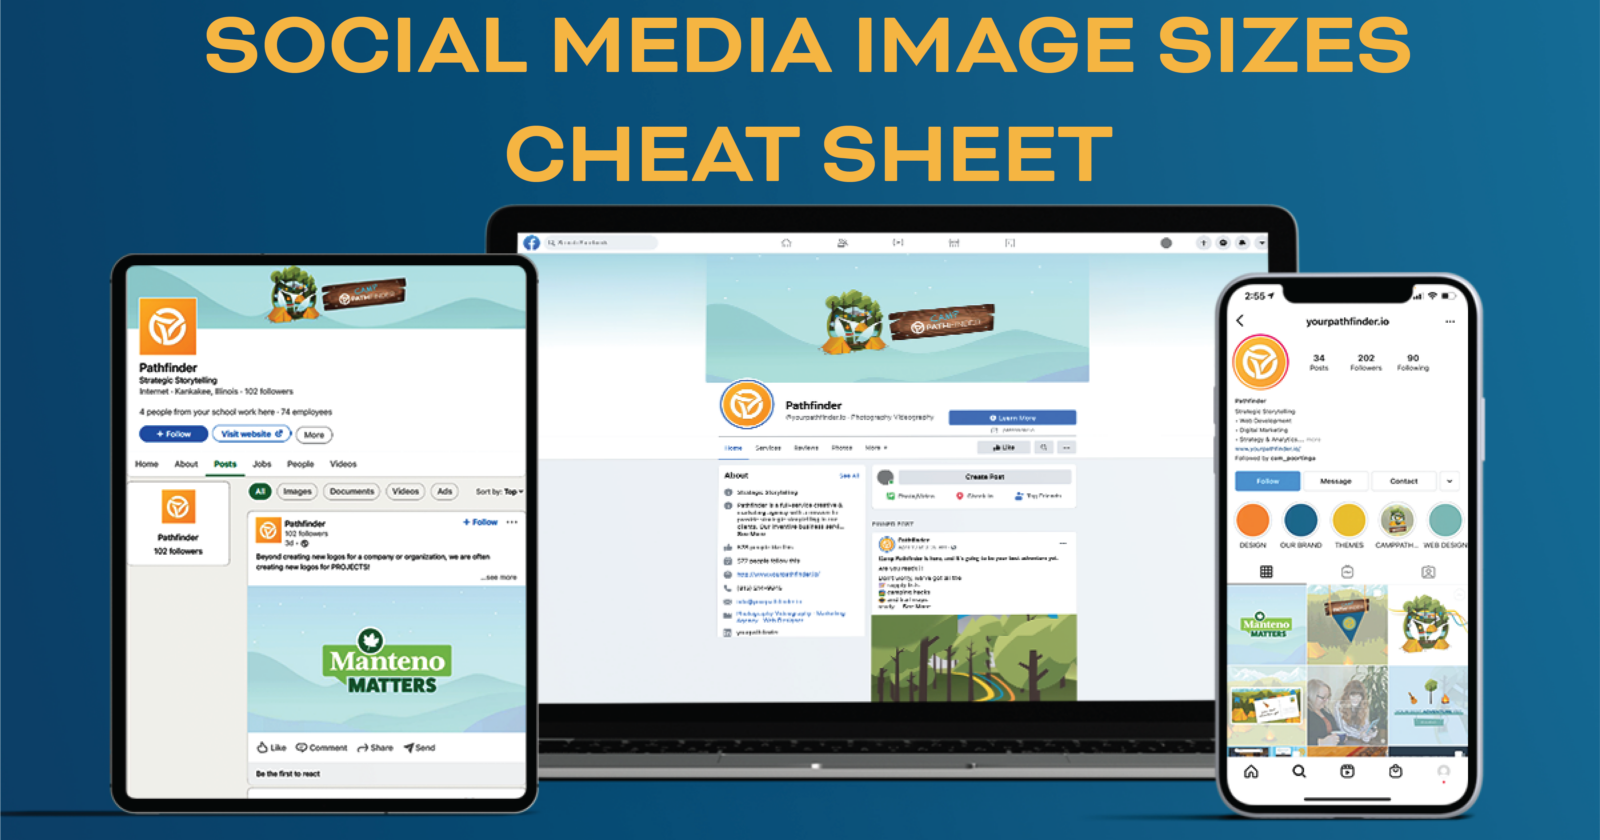 Social Media Images Sizing Cheat Sheet, 2021